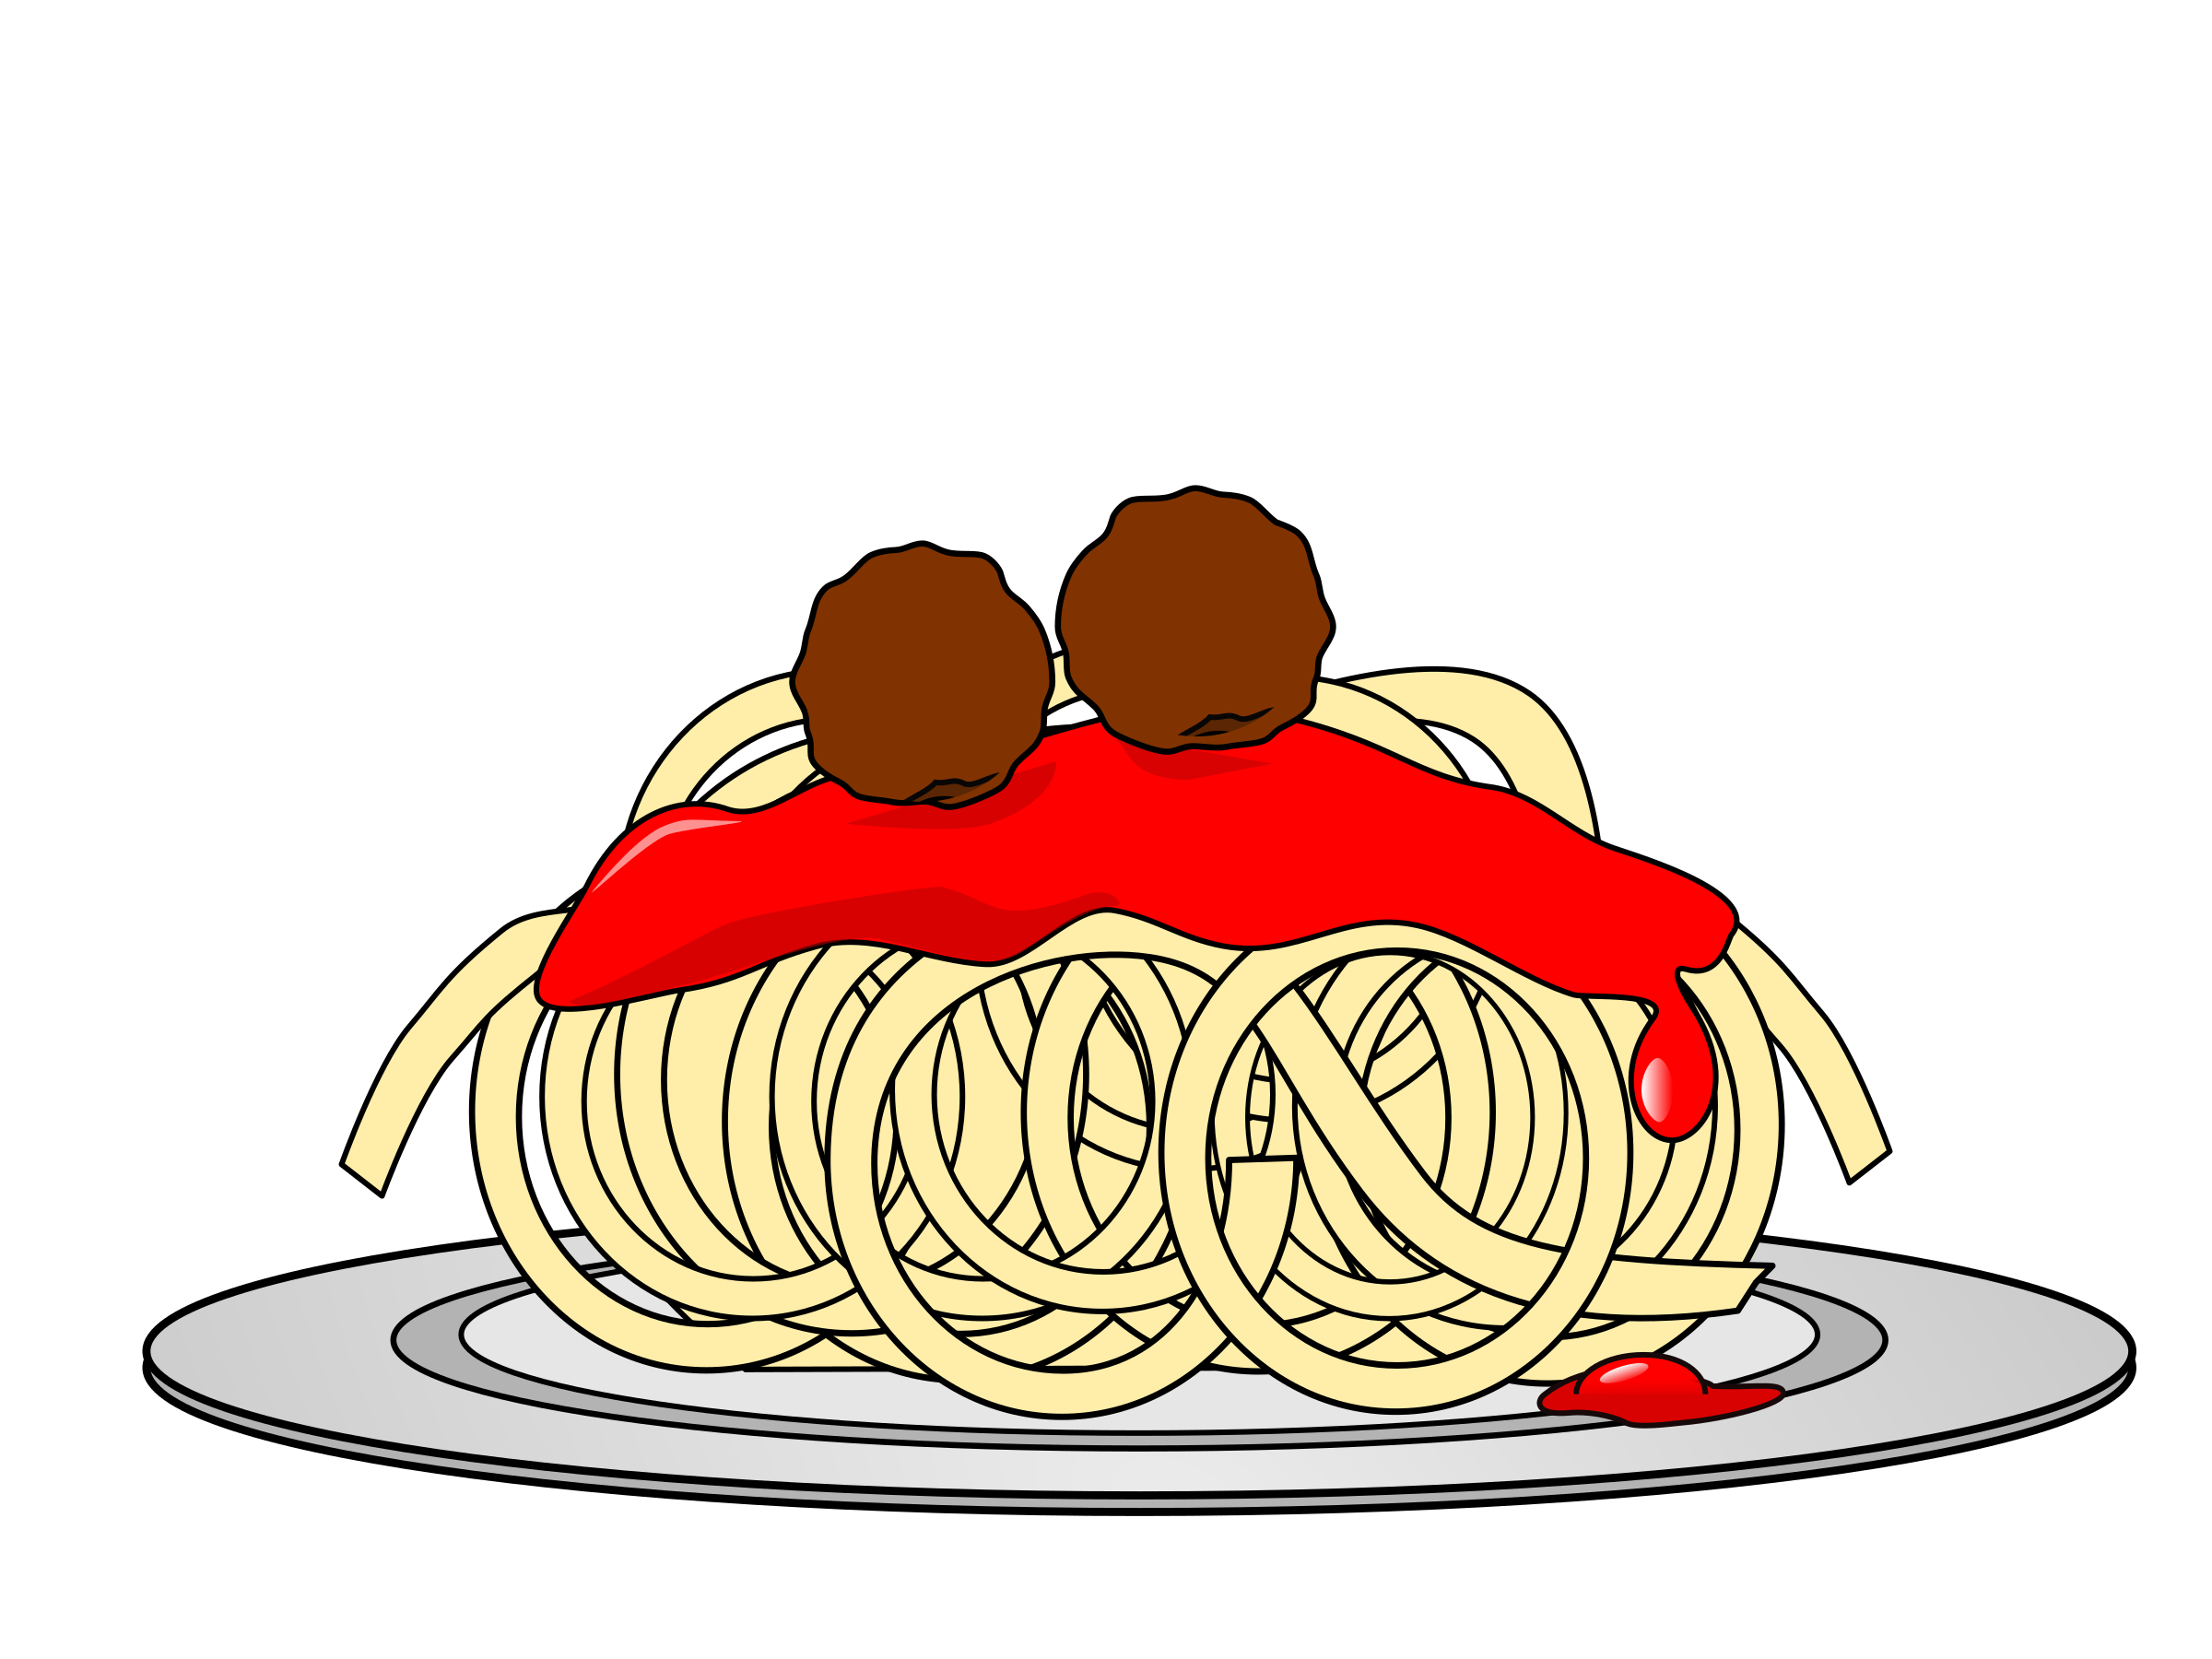 spaghetti and meatballs png